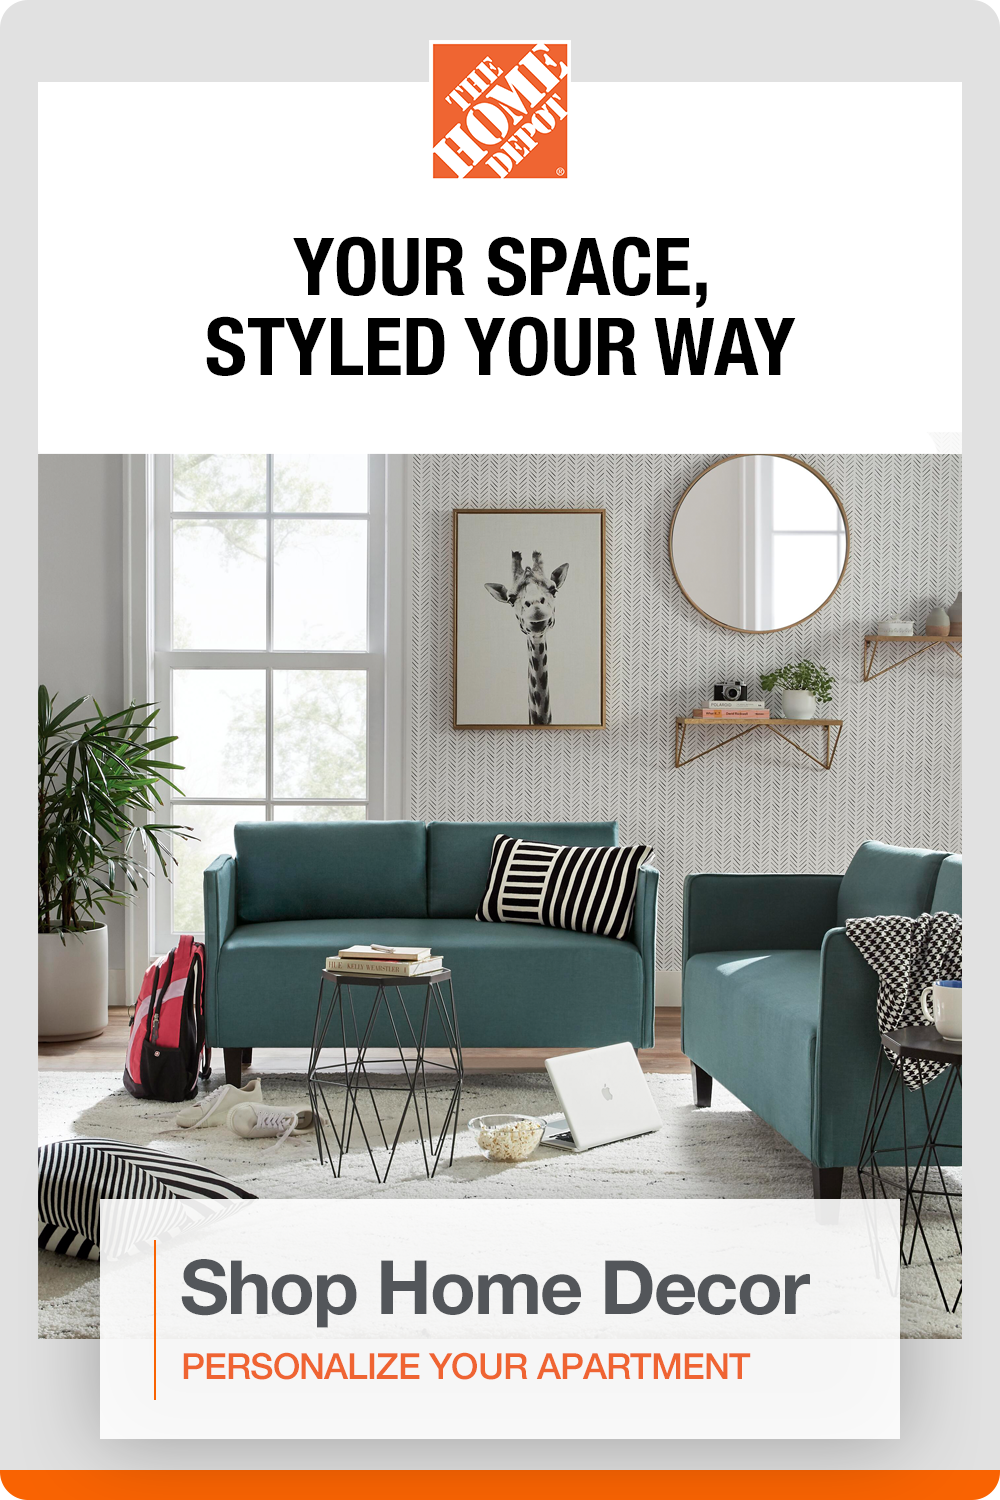 Personalize Your Small Space With On Trend Decor And More At The Home Depot Decorating A New Home Room Ideas Bedroom Home